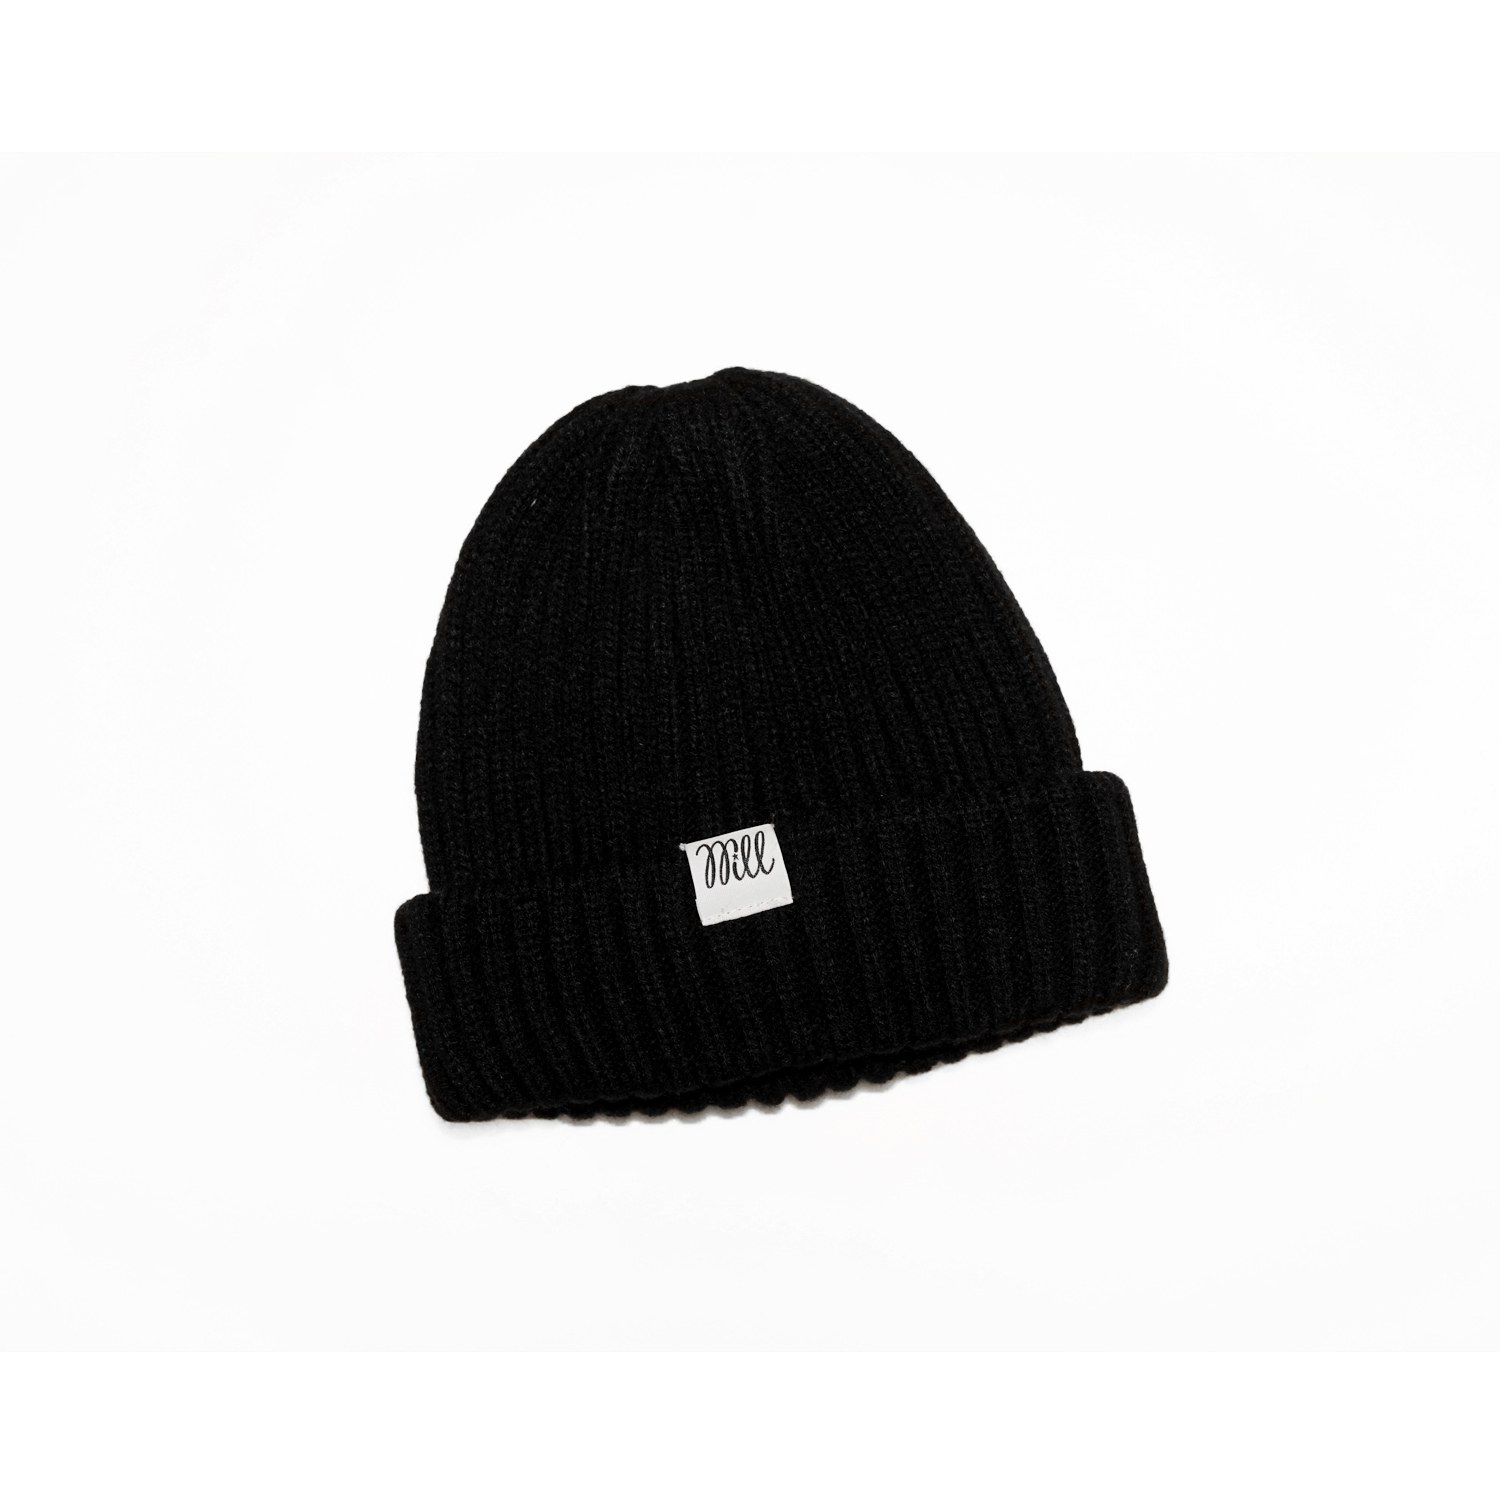 WILL BASIC ROLL UP BEANIE